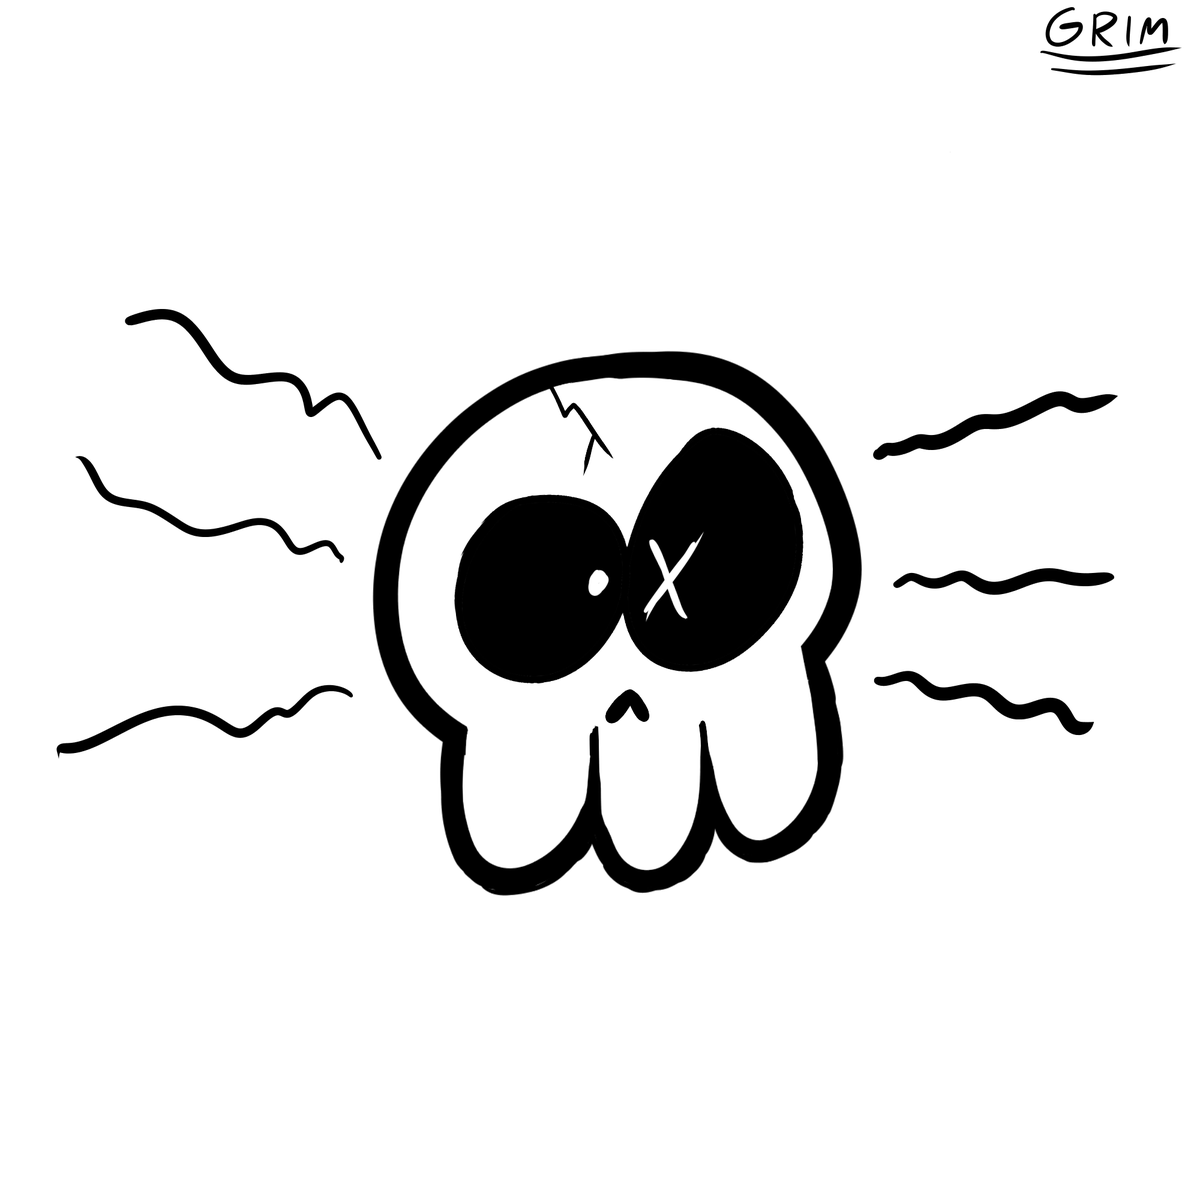 First drawing on my new table! jus a skull... pic.twitter.com/GrRJ05X1W8